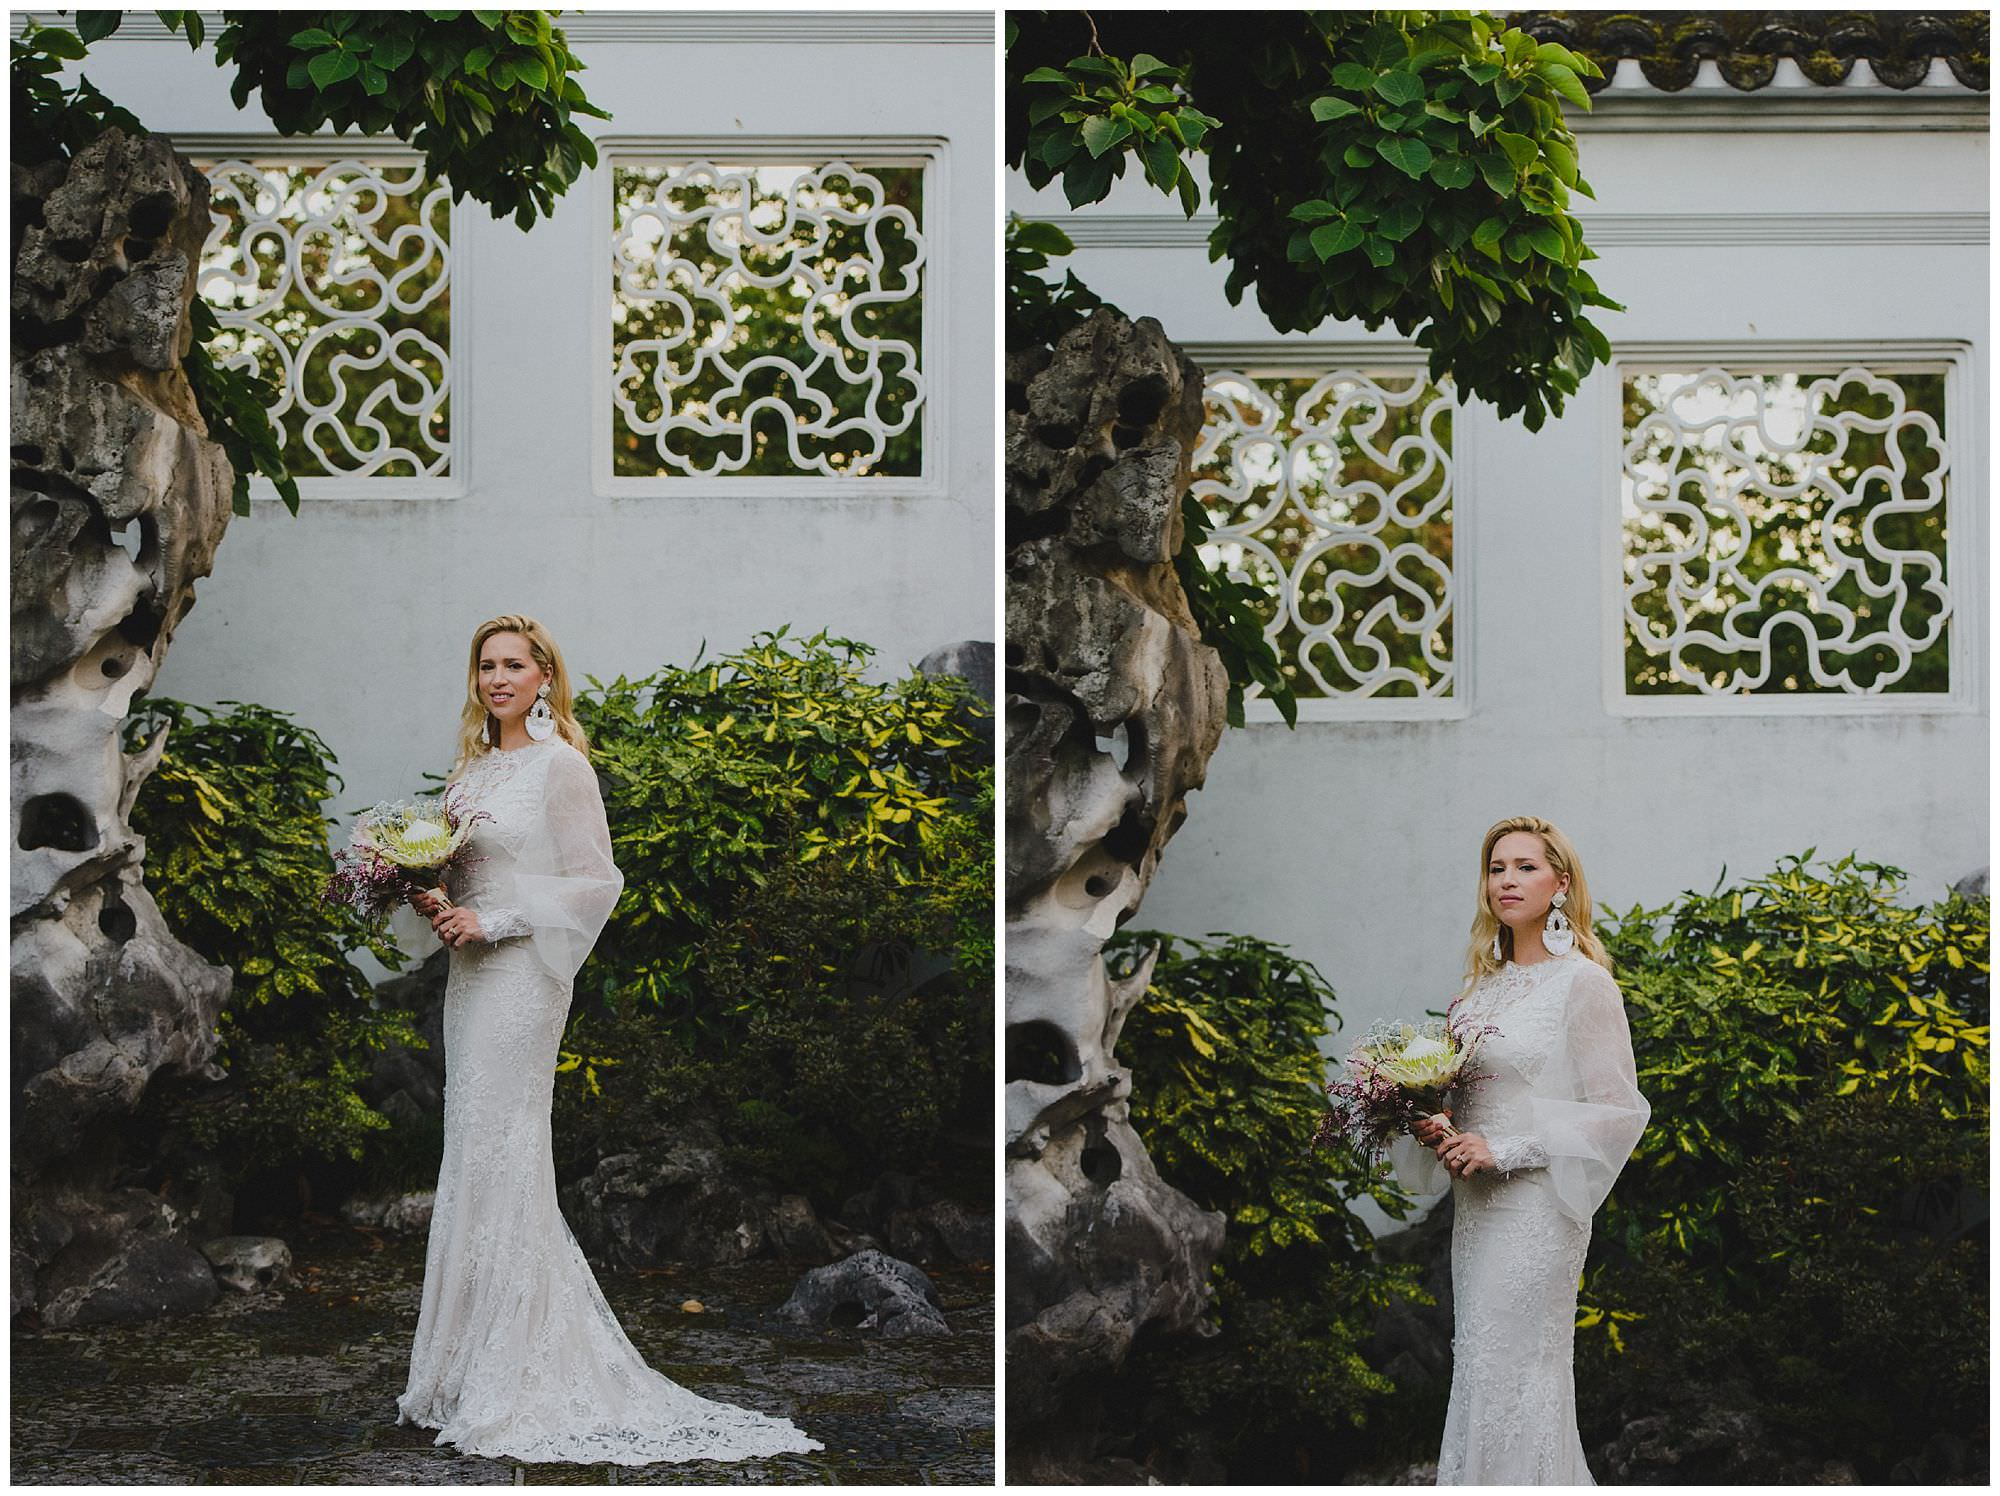 Bride in hand-made wedding dress with puffy sleeves at sunset at her wedding in Dr. Sun Yat-Sen Classical Chinese Gardens, Vancouver Wedding Photographer